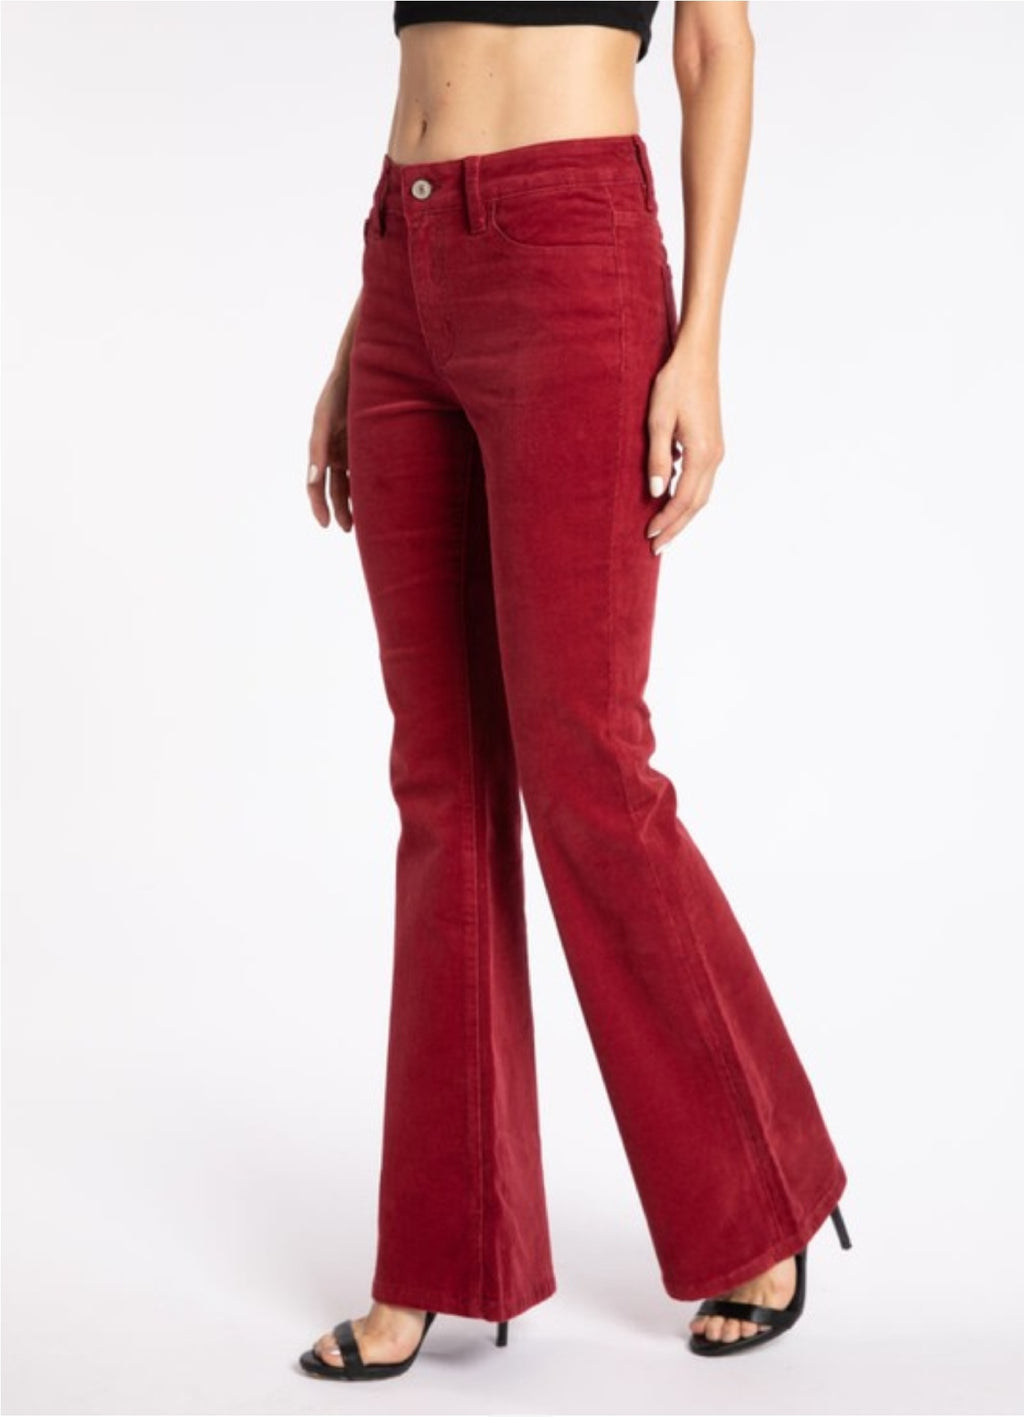 Red KanCan High Rise Skinny Flare Corduroy Jeans